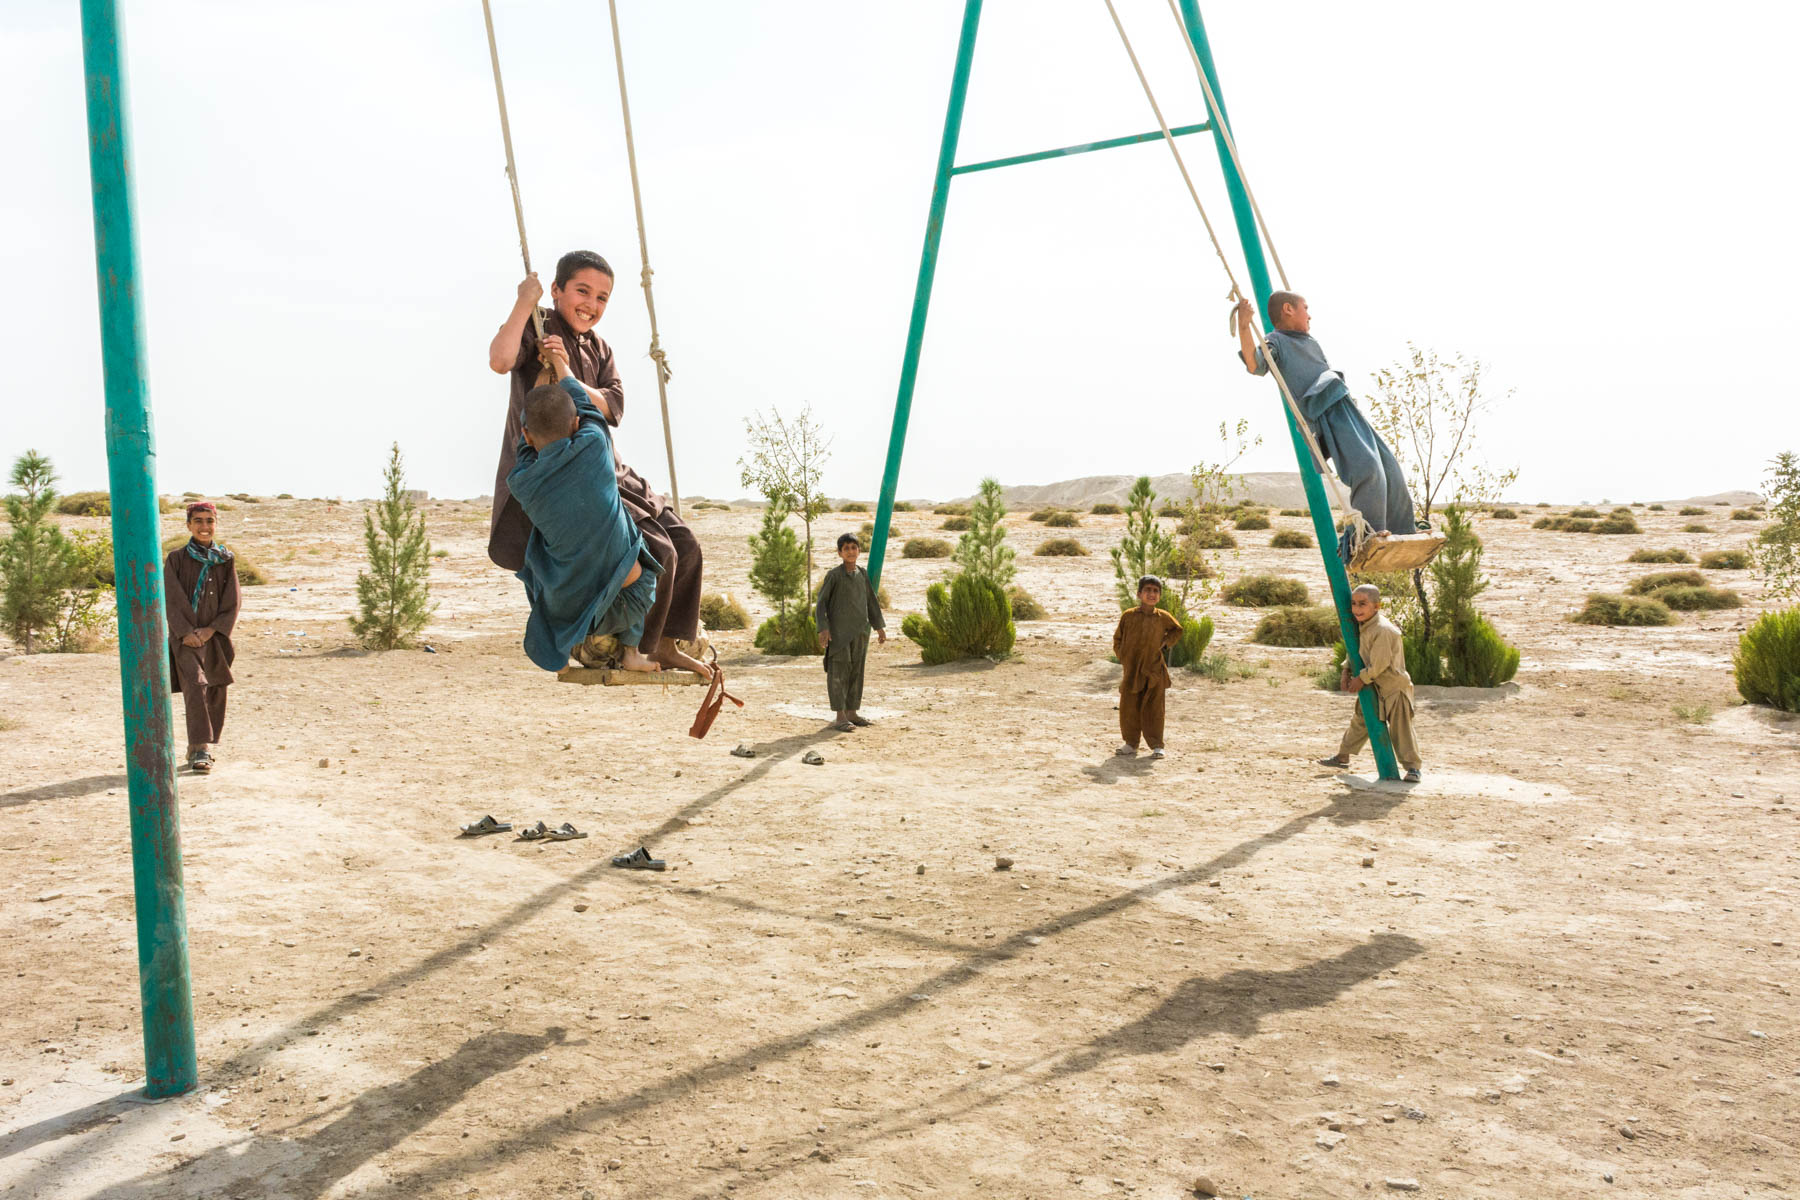 Children swinging in Old Balkh, Afghanistan - Lost With Purpose